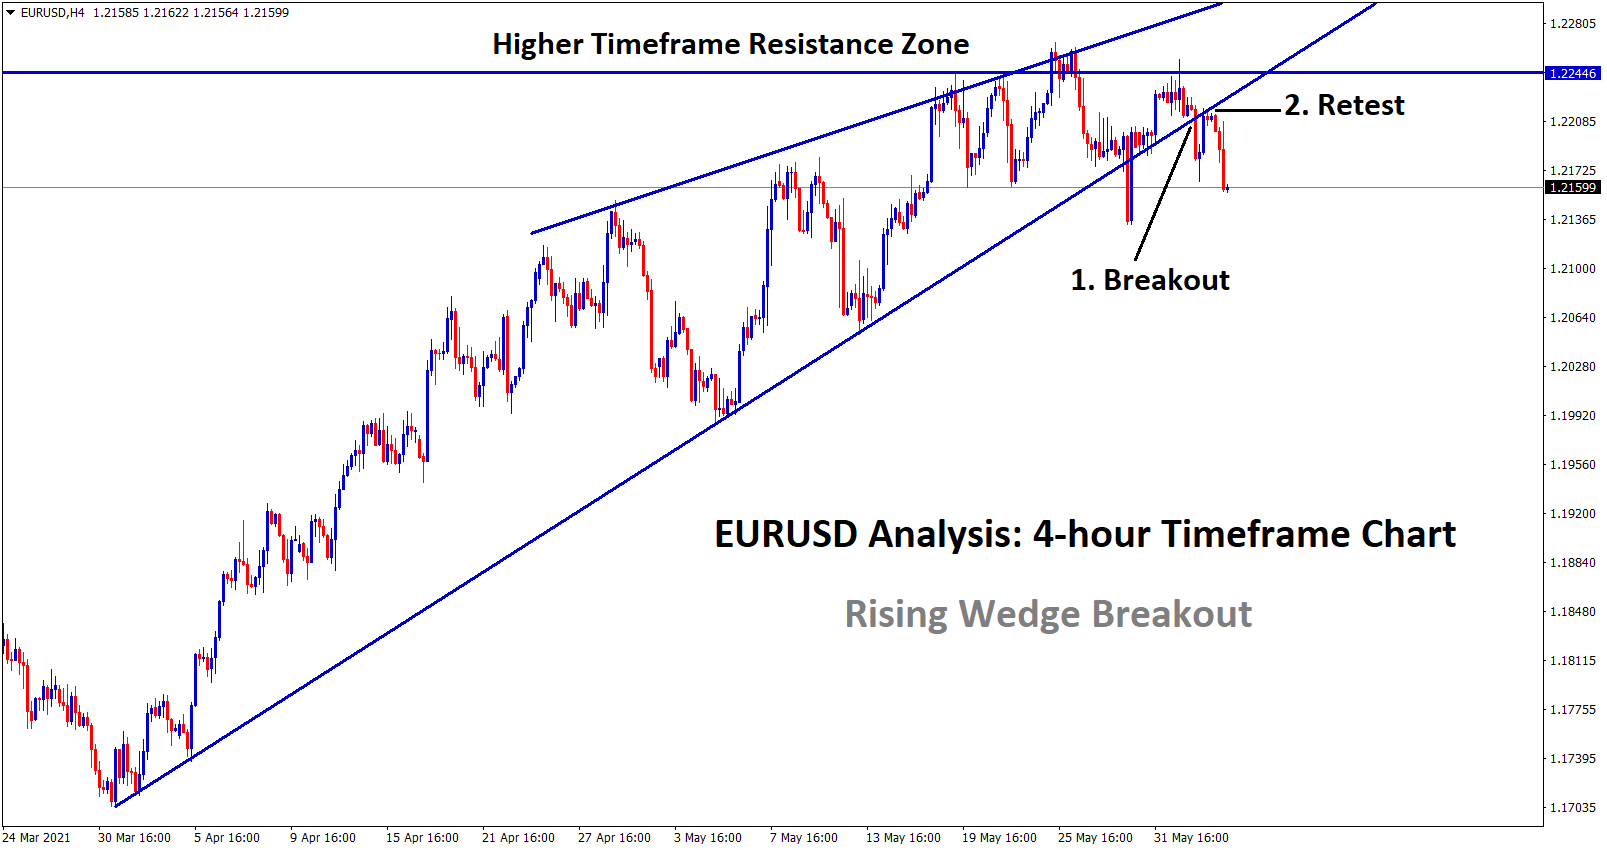 EURUSD broken the bottom level of the rising wedge breakout and retest happened expecting fall.